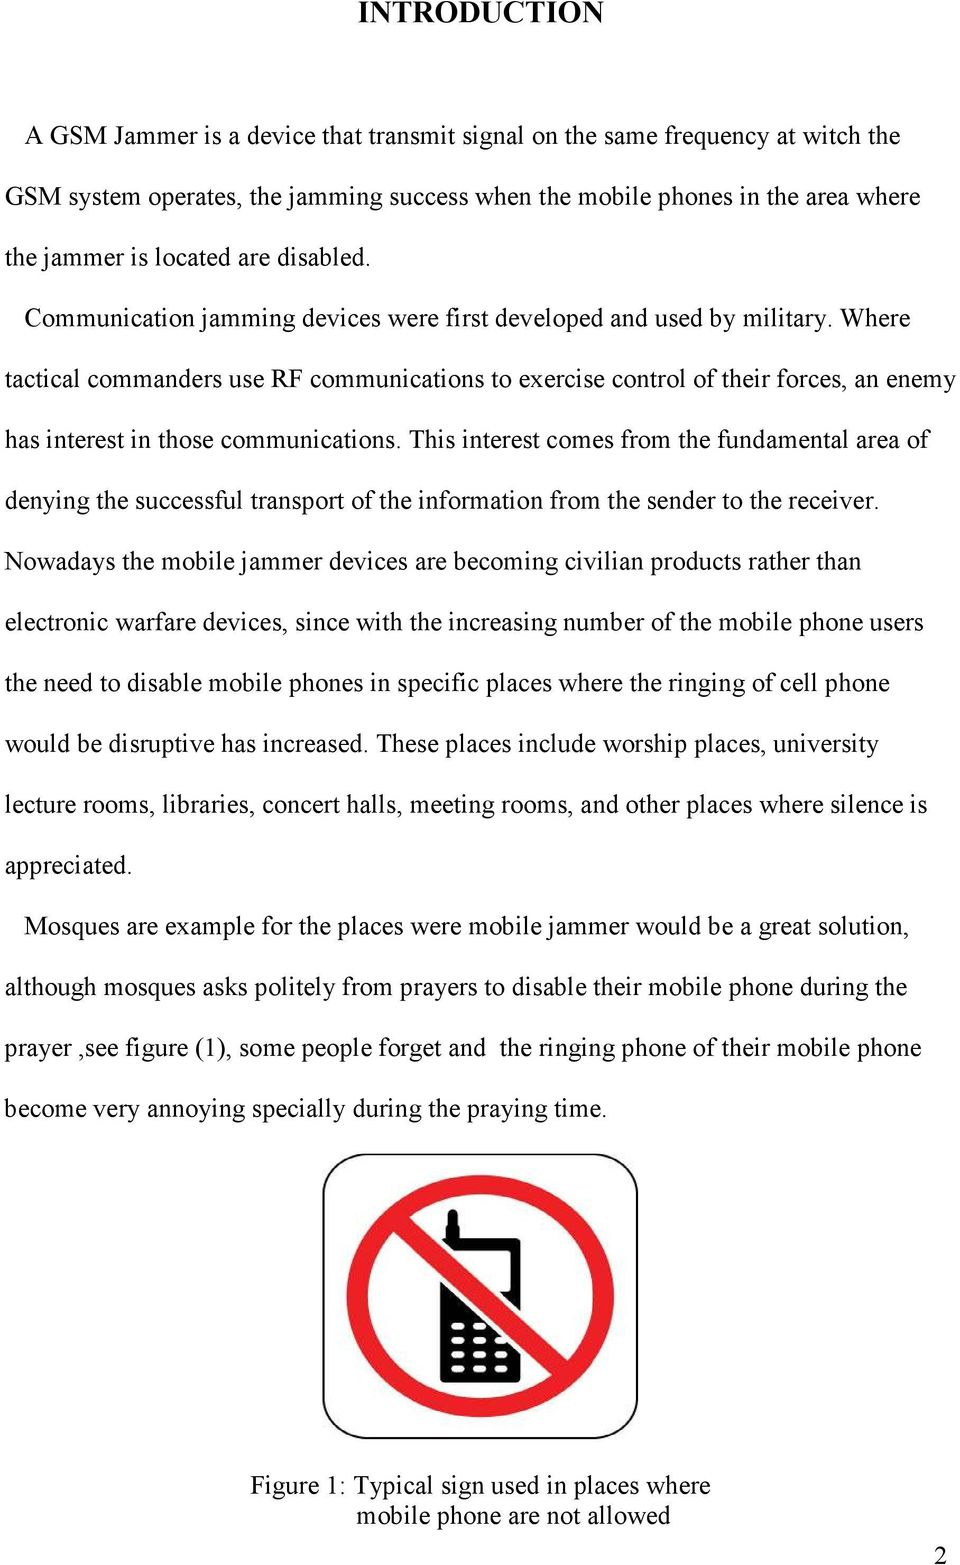 Gsm 900 Mobile Jammer Pdf Cell Phone Circuit Schematic Where Tactical Commanders Use Rf Communications To Exercise Control Of Their Forces An Enemy Has